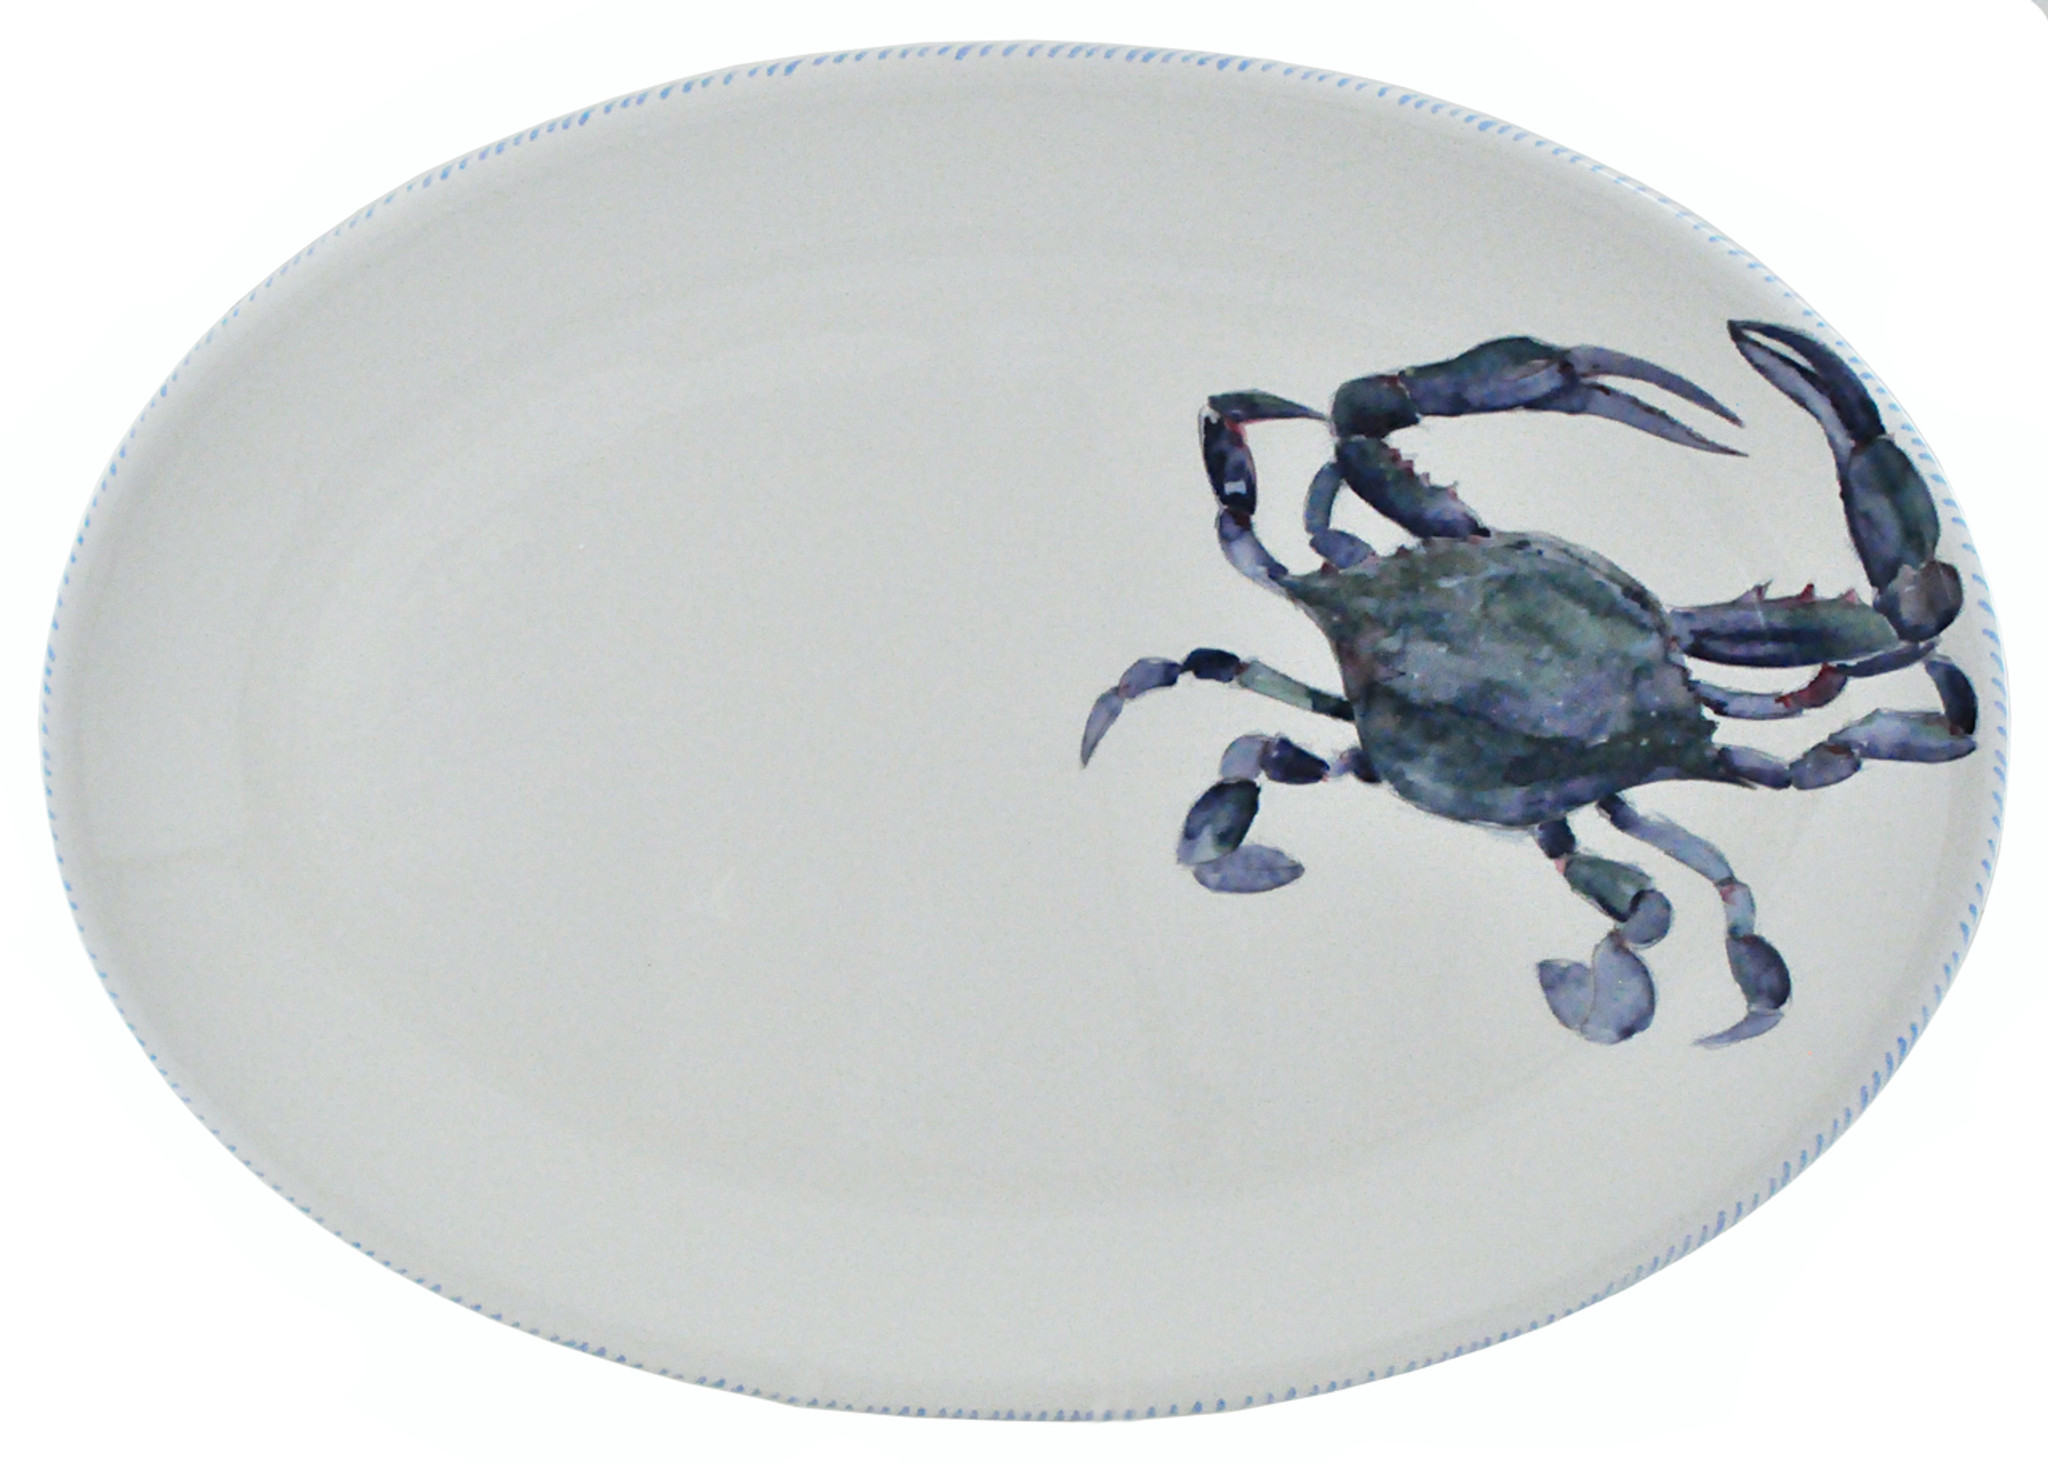 Blue Crab Oval Ceramic Serving Platter Caron S Beach House